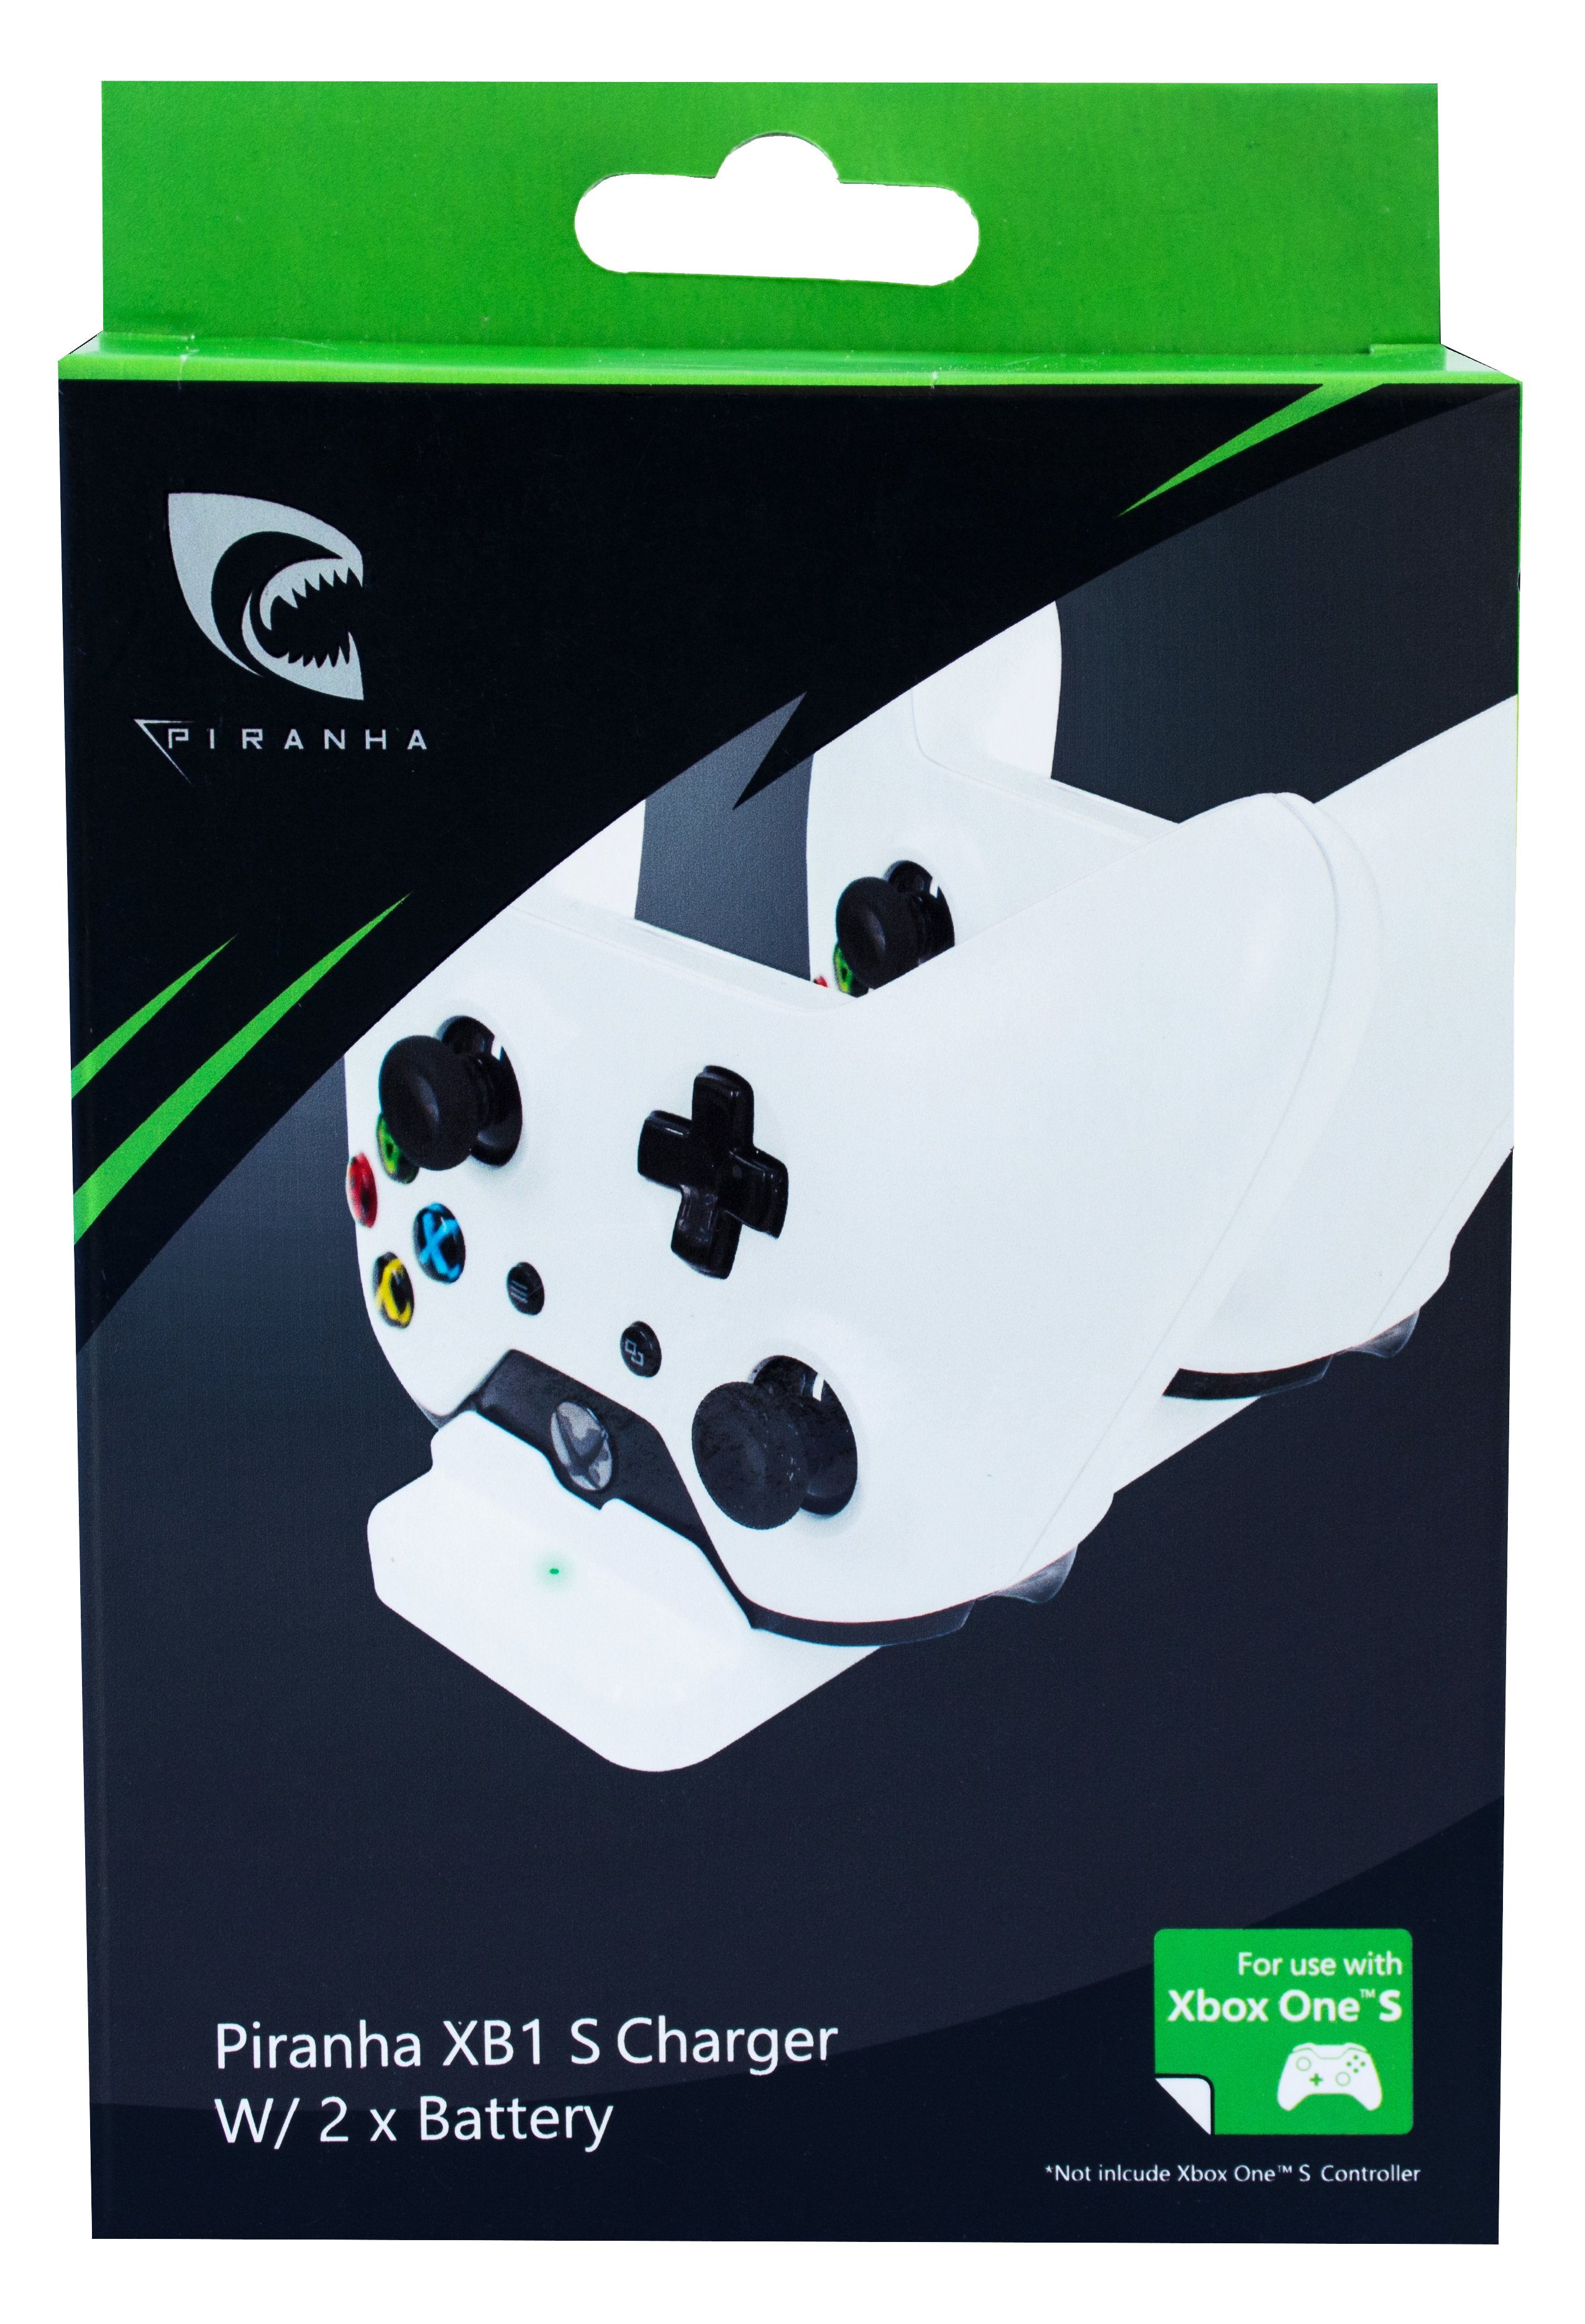 Piranha Xbox One S Charger